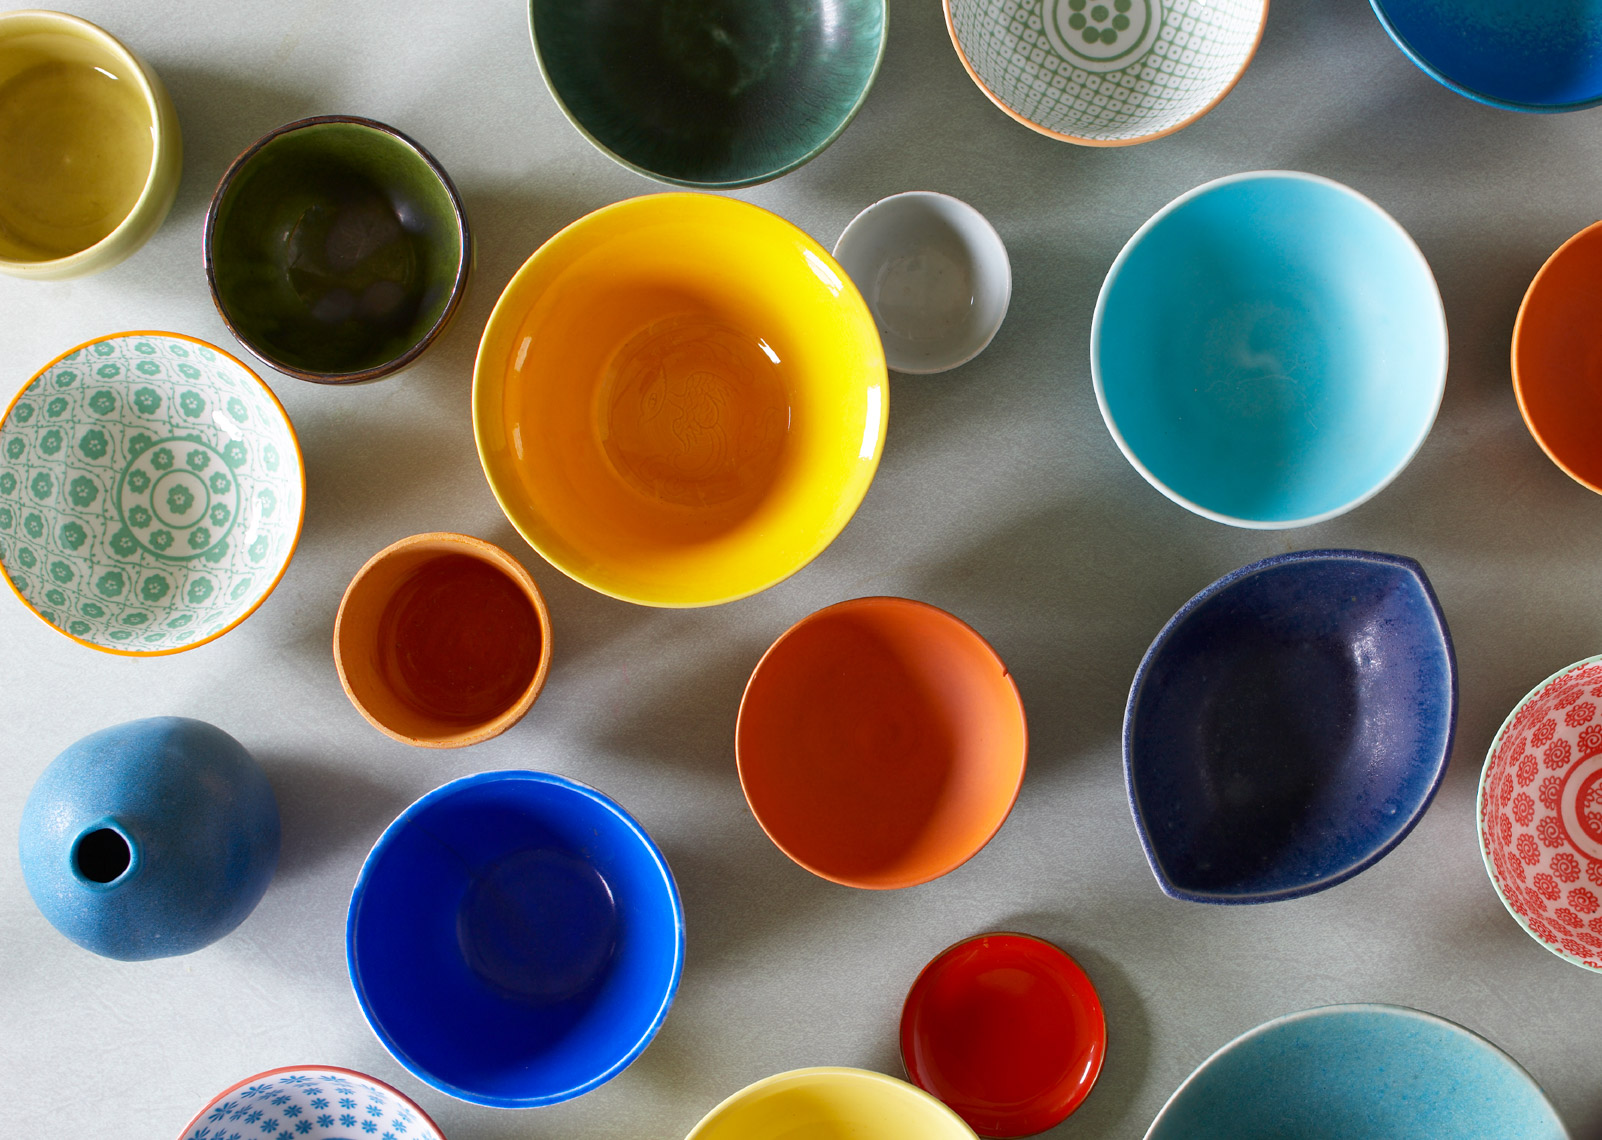 Bowls, colorful collection on floor hilip Harvey Photography, San Francisco, California, still life, interiors, food, lifestyle and product photography